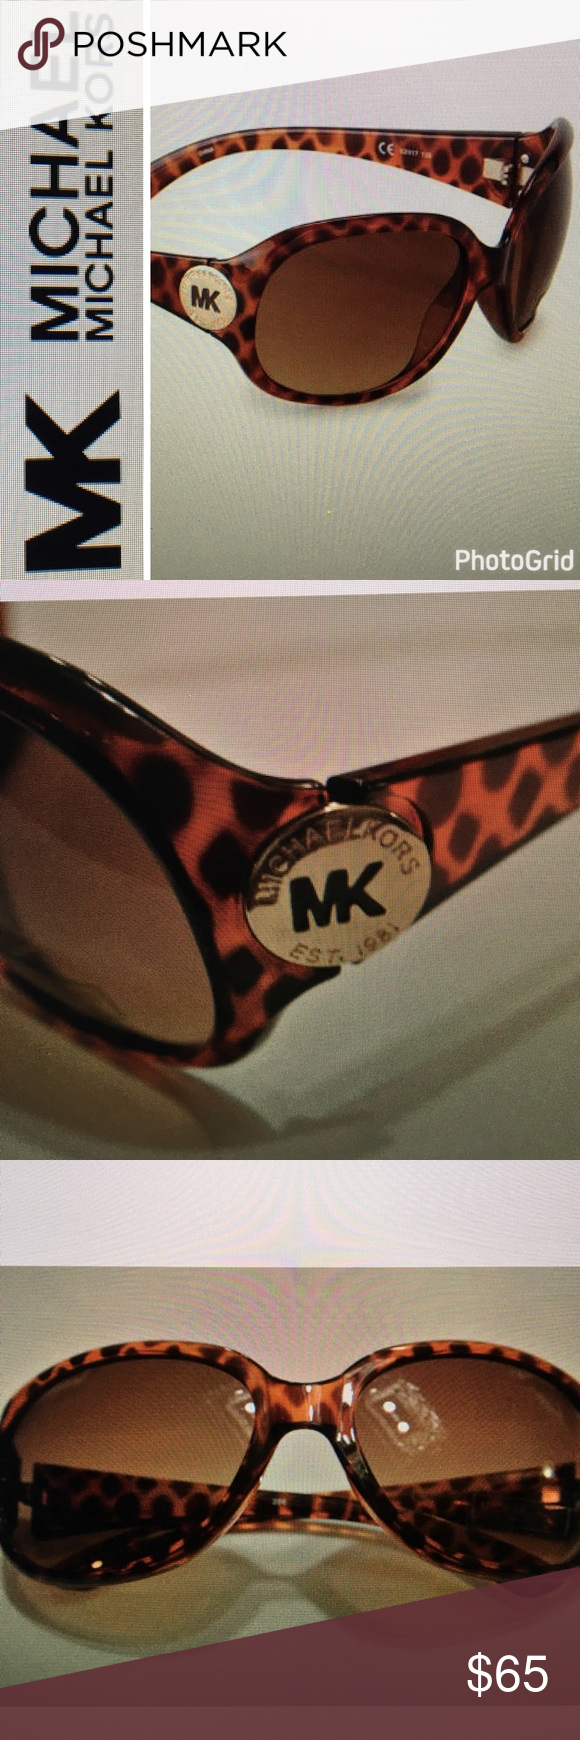 NWT Michael Kors MK Circle Logo Sunglasses  Round frame sunglasses add an exotic accent to your sunny day look with these animal patterned sunglasses from Michael Kors Michael Kors Accessories Glasses